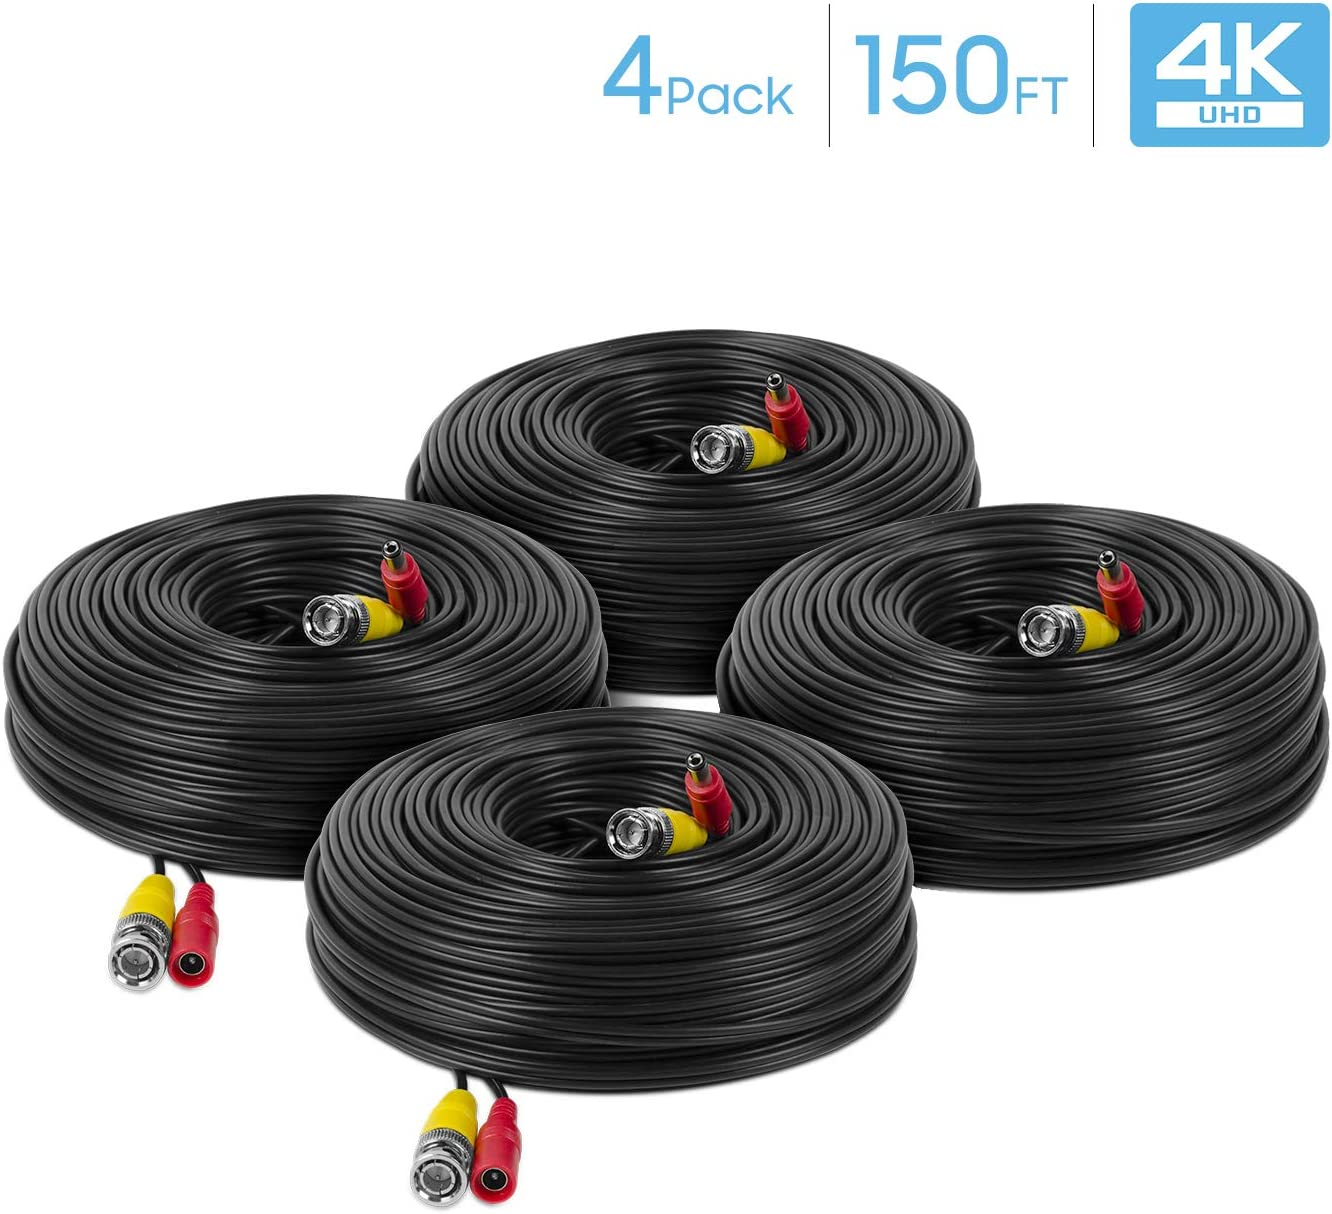 Amcrest 4-Pack 4K Security Camera Cable 150FT BNC Cable, Camera Wire CCTV, Pre-Made All-in-One Video and Power Cable for Security Camera, HDCVI, HDTVI Camera, Analog, DVR (4PACK-SCABLE4K150B-PP)